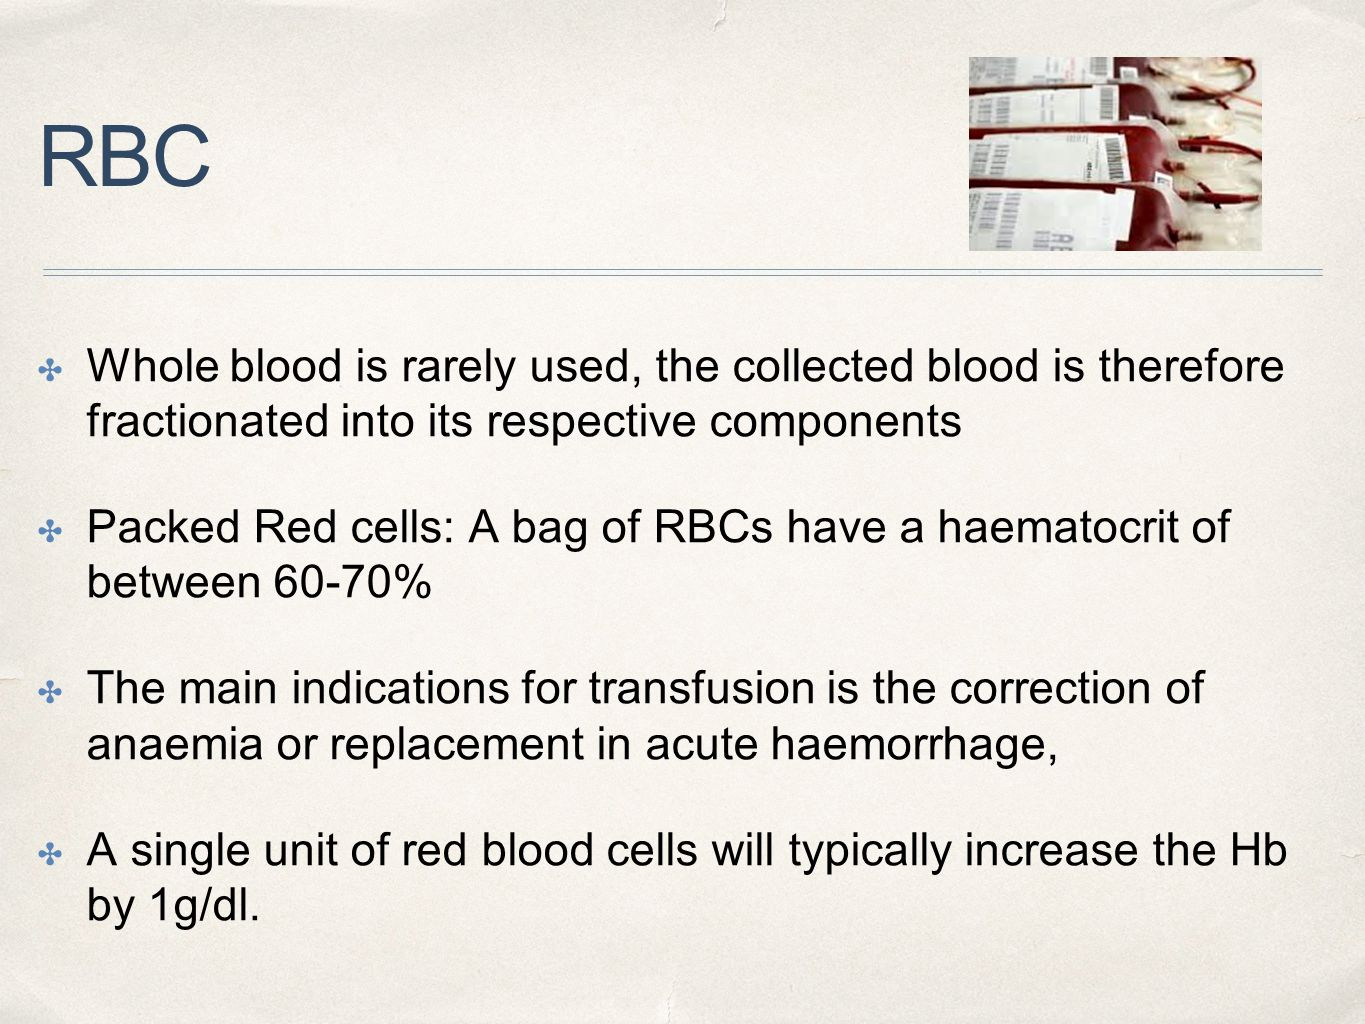 RBC Whole blood is rarely used, the collected blood is therefore fractionated into its respective components.